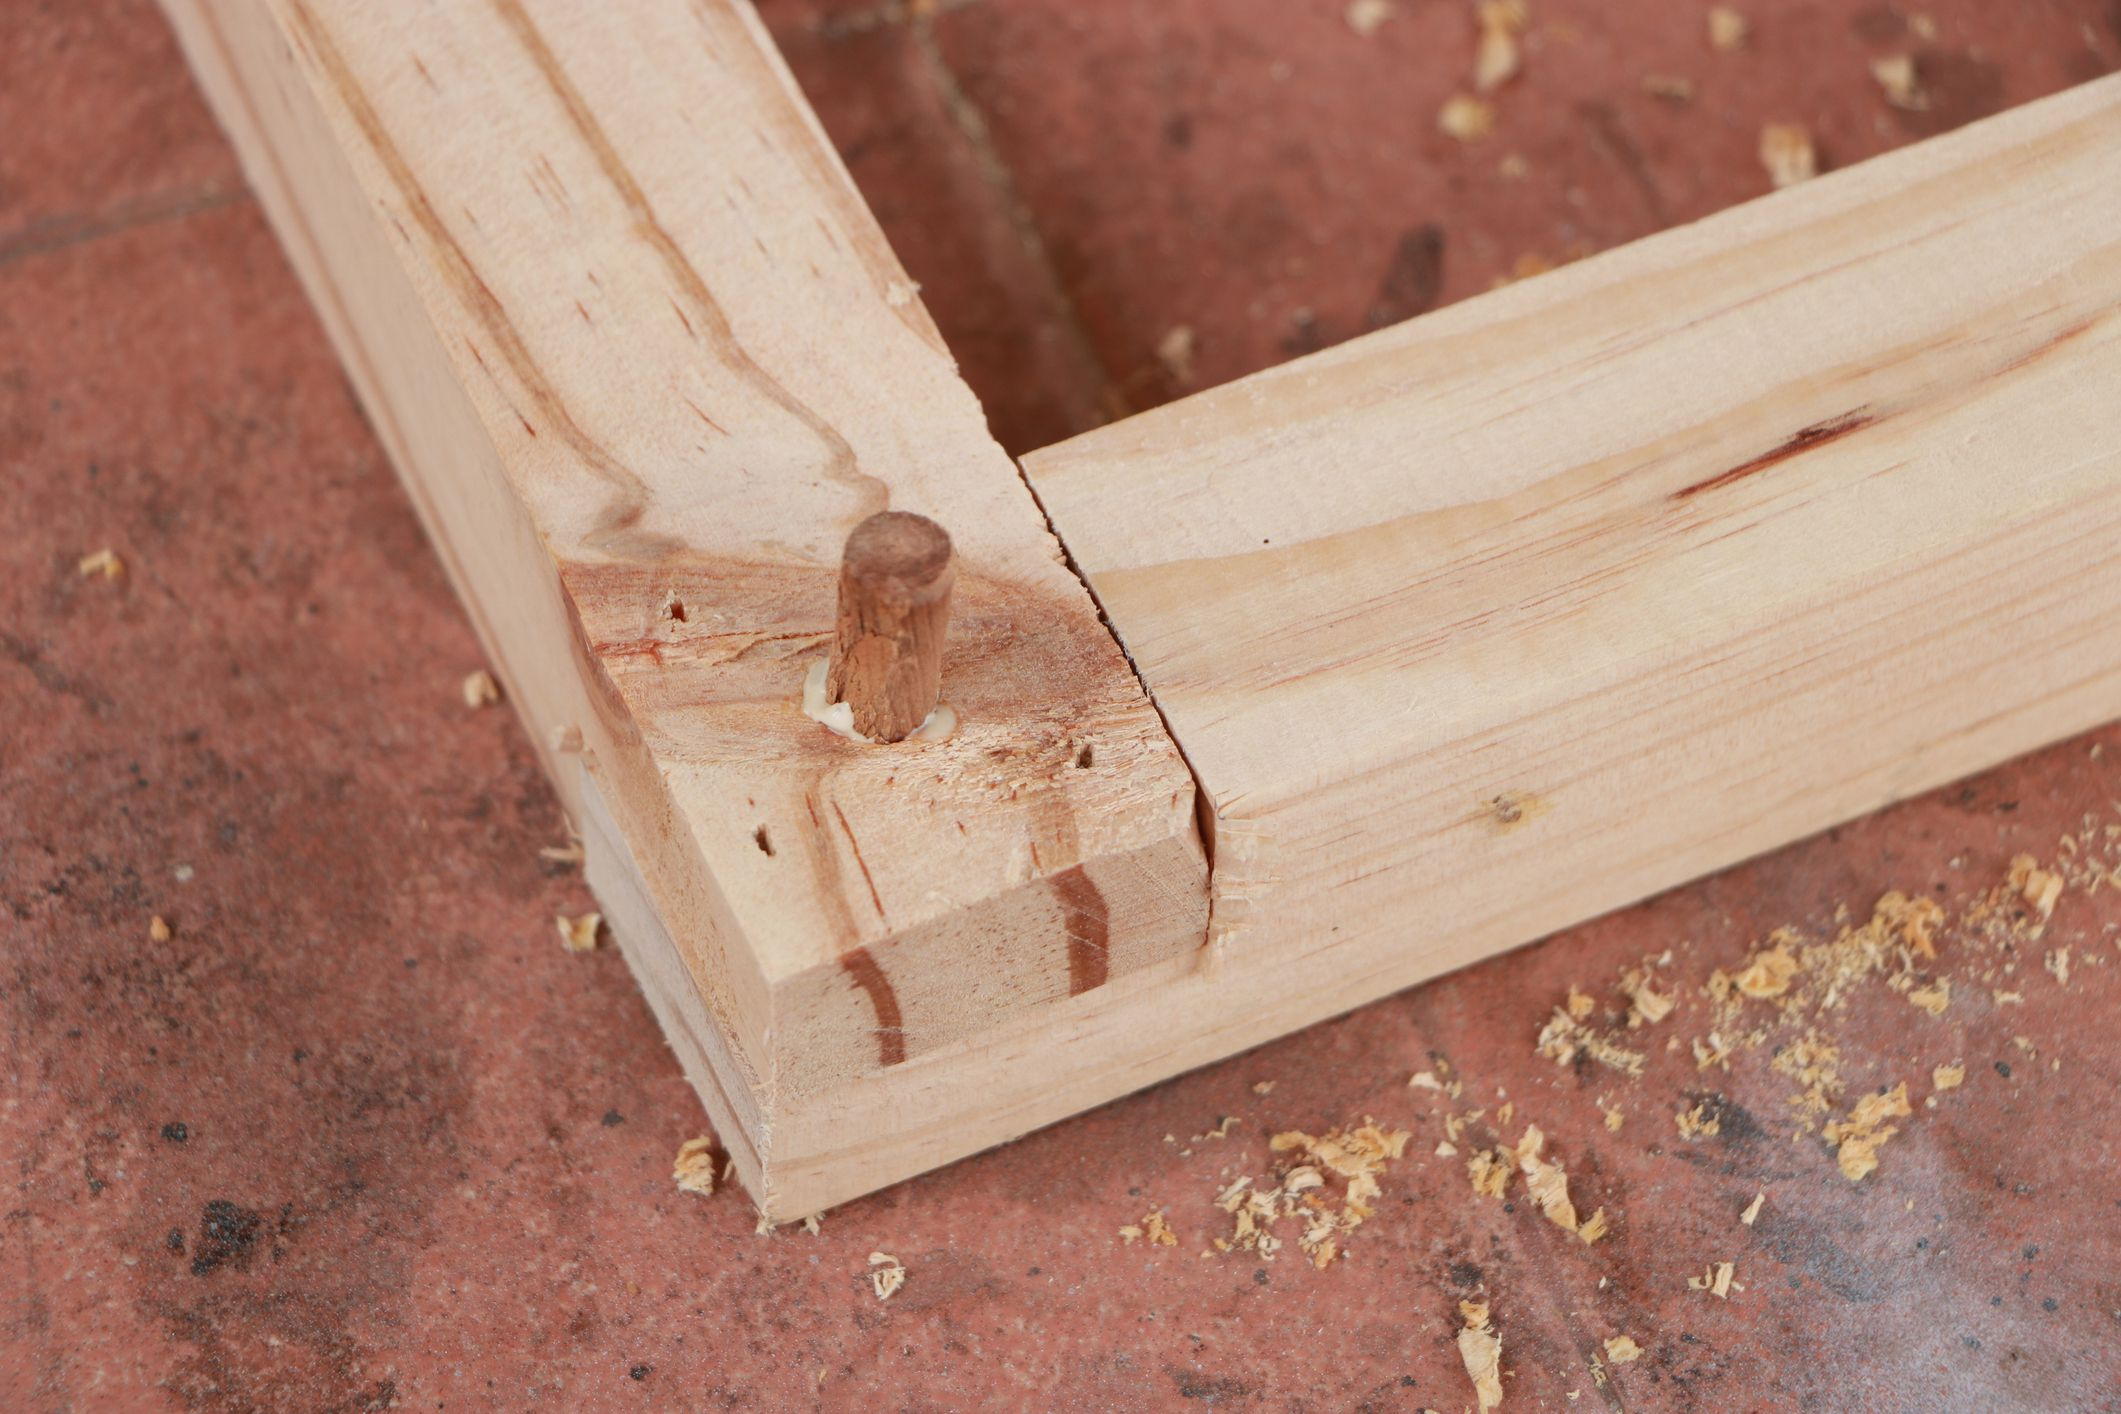 how to connect wood using dowel joinery